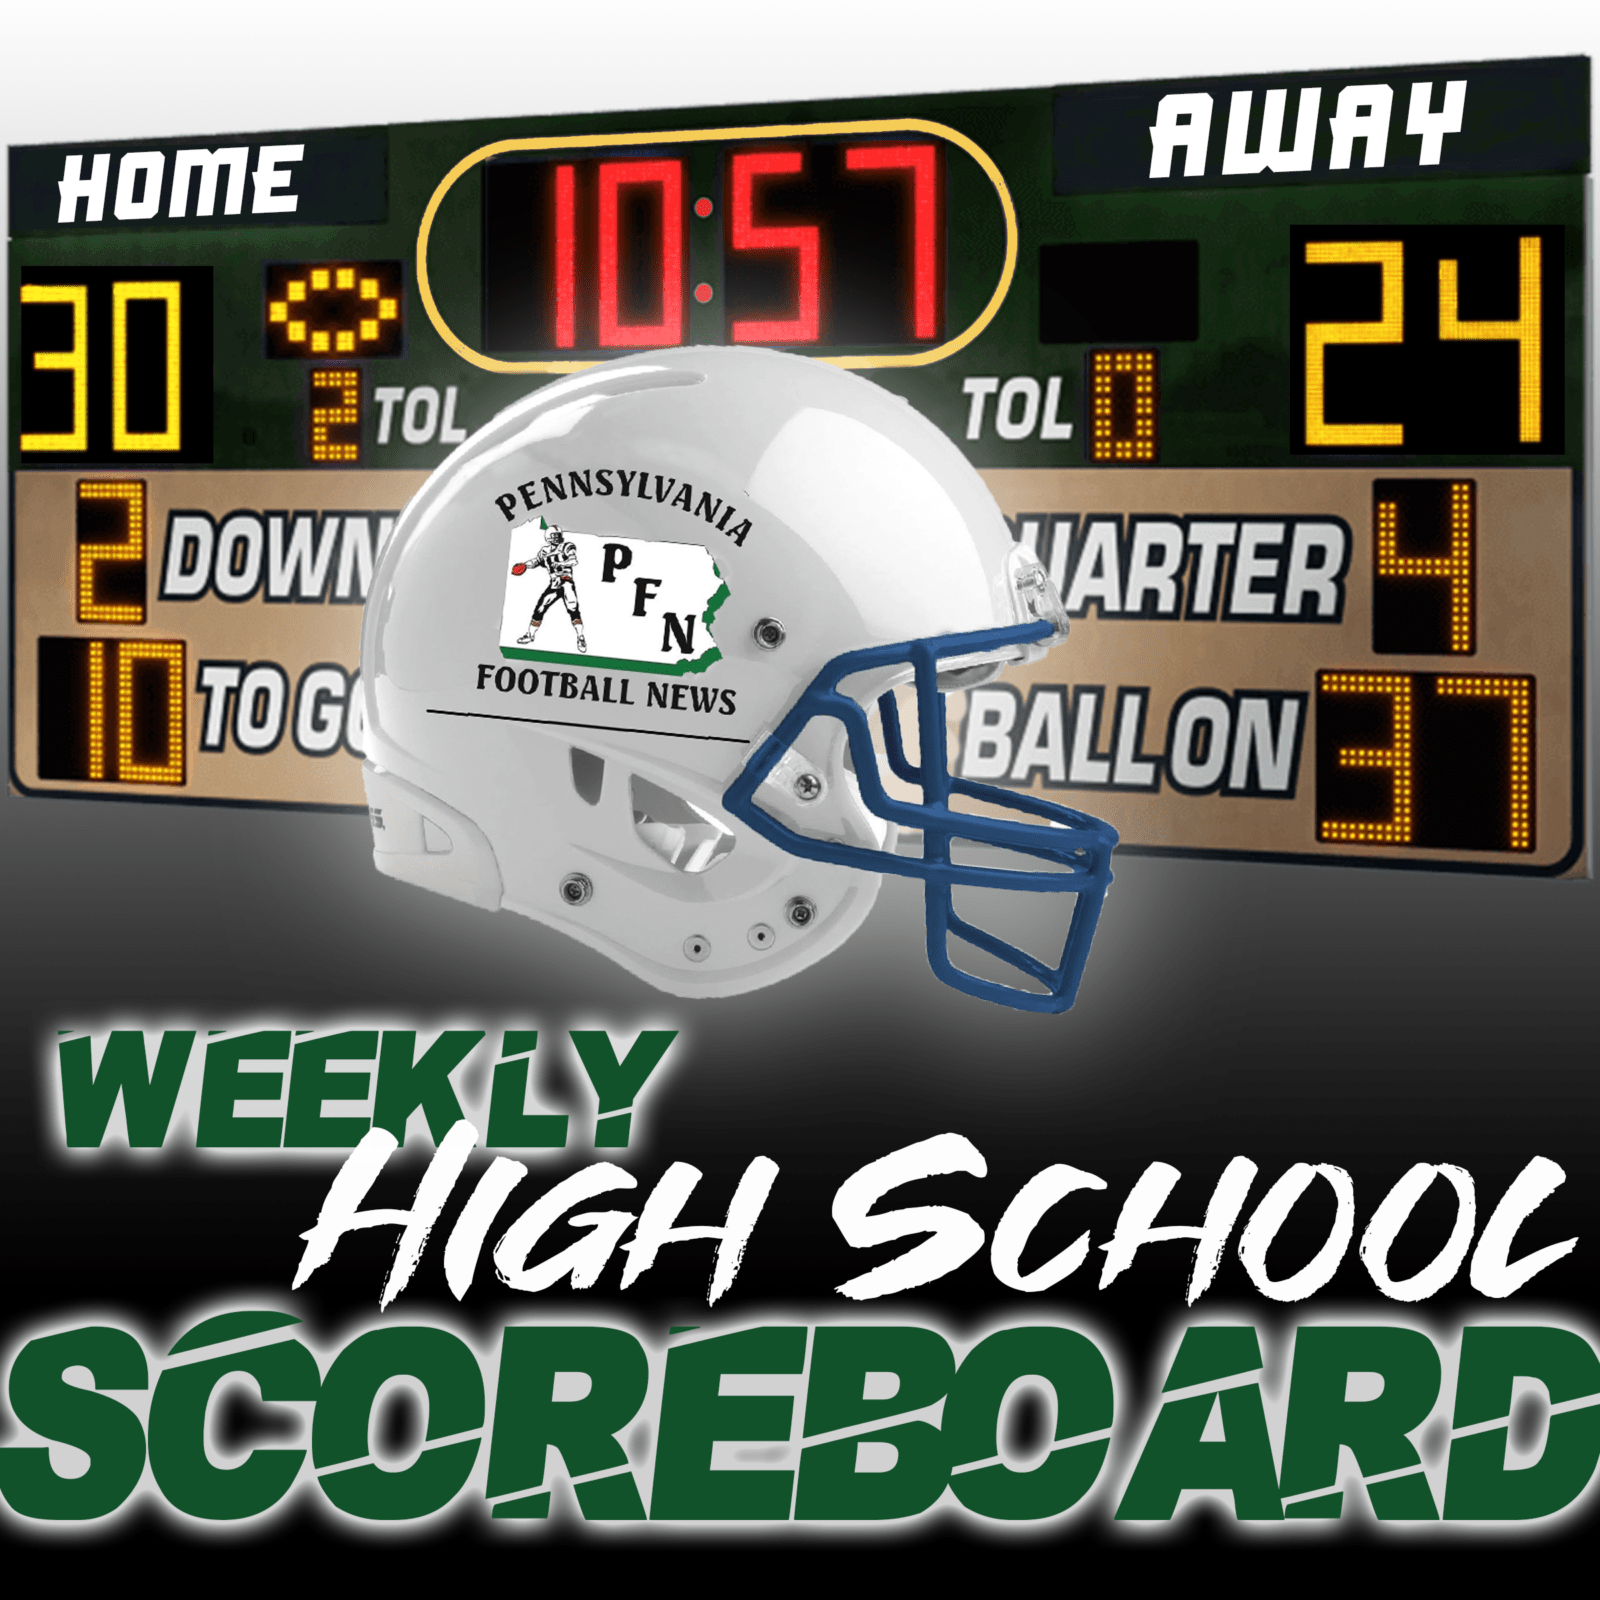 PA Football News November 25-28 2020 Scoreboard